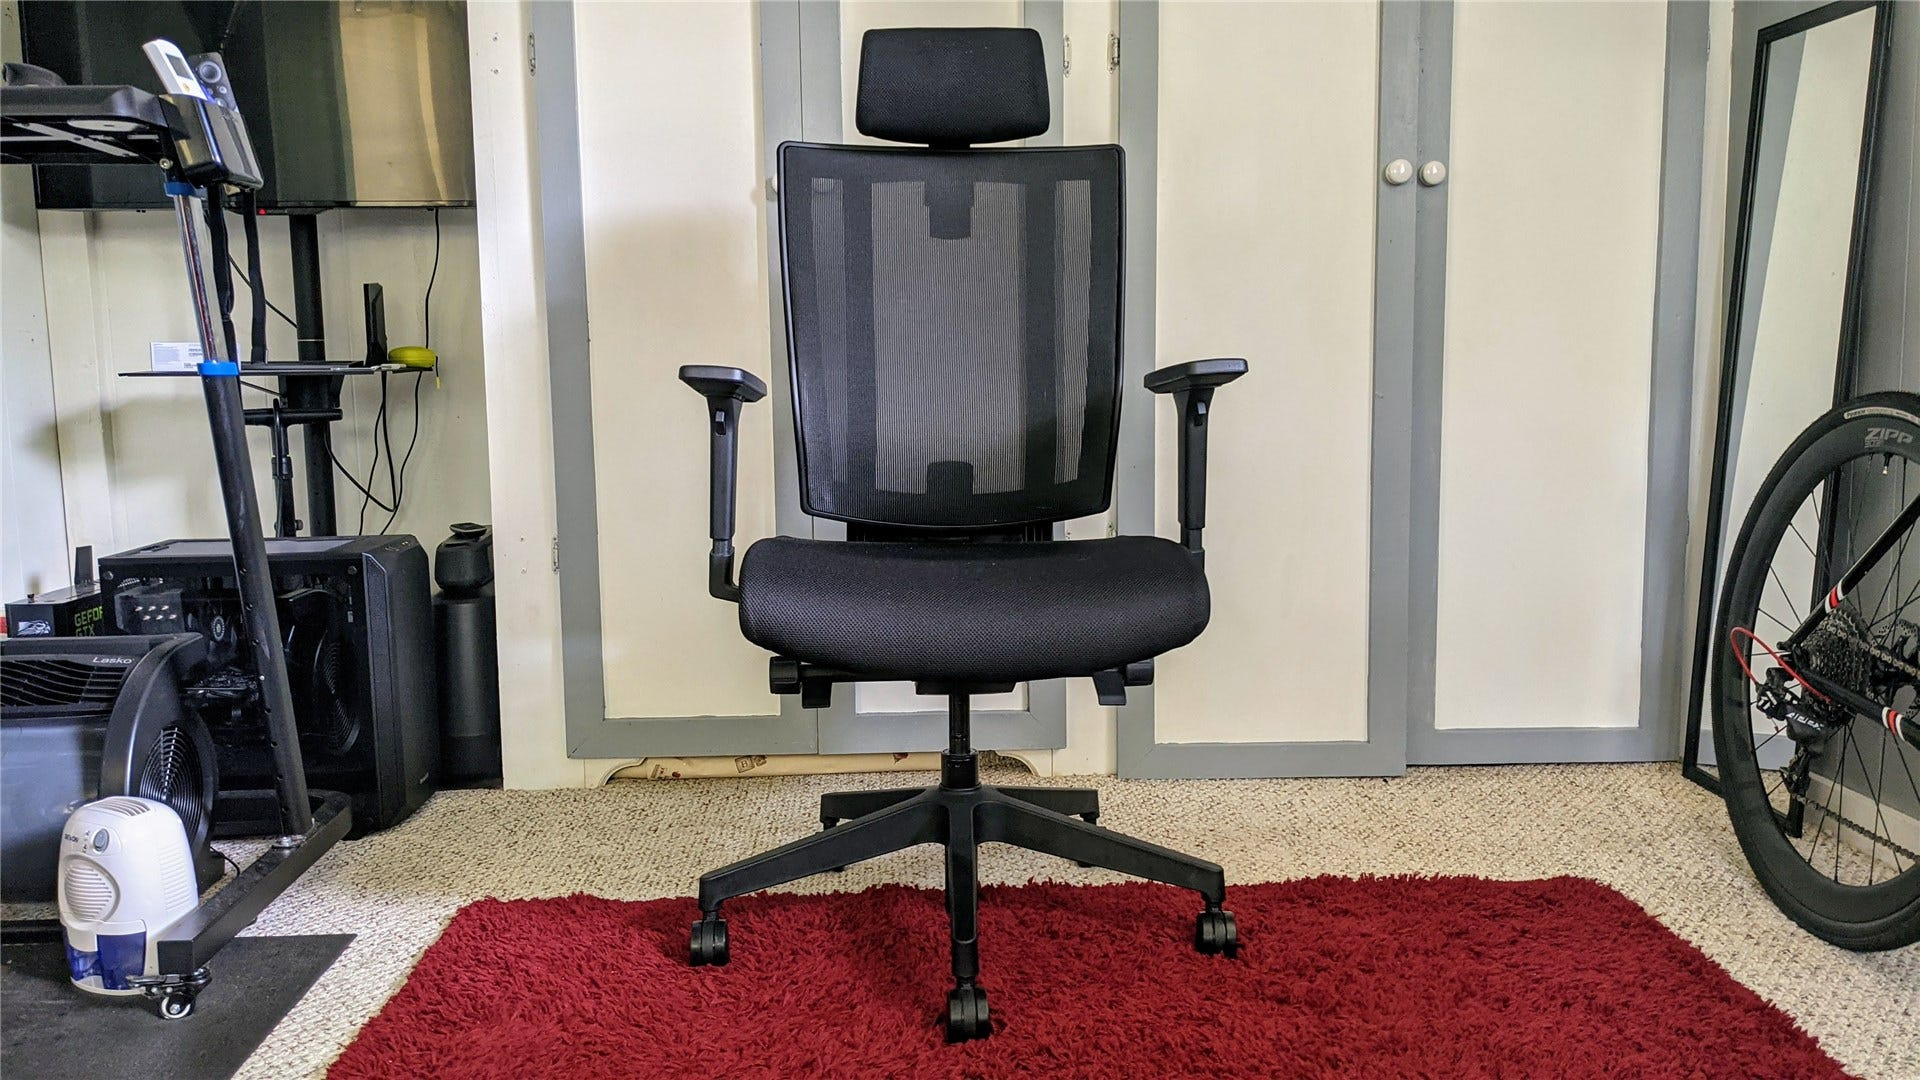 A front view of the Vari Task Chair